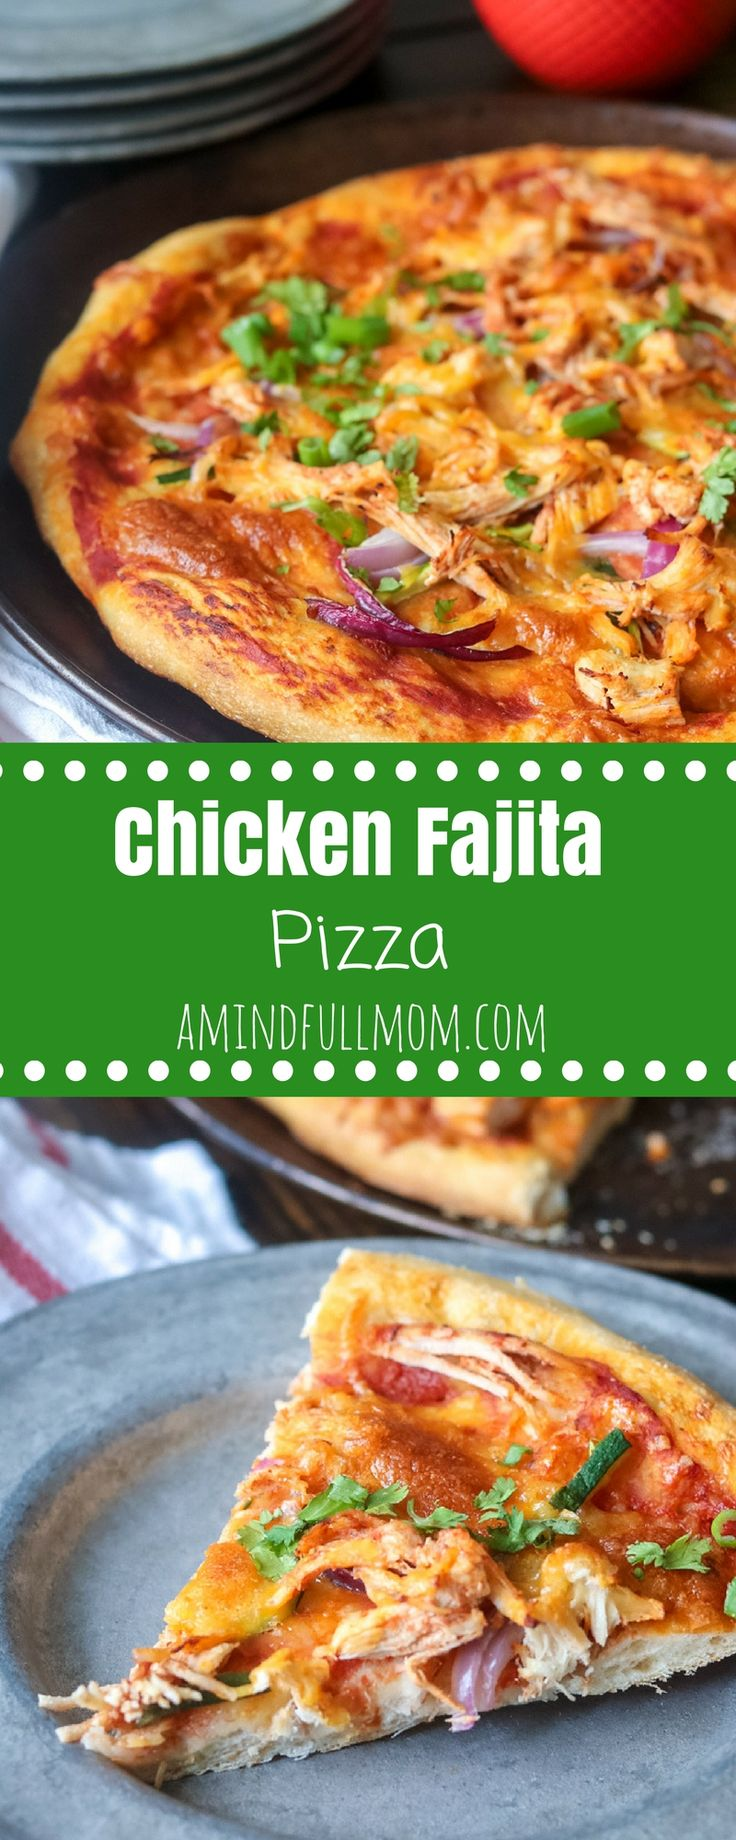 Chicken Fajita Pizza: All the flavors of a chicken fajita in pizza form. This fun twist on pizza, uses a slow-cooker chicken fajita mixture that makes assembling this pizza a breeze. Serve with a dollop of sour cream and a squeeze of lime juice for an aut